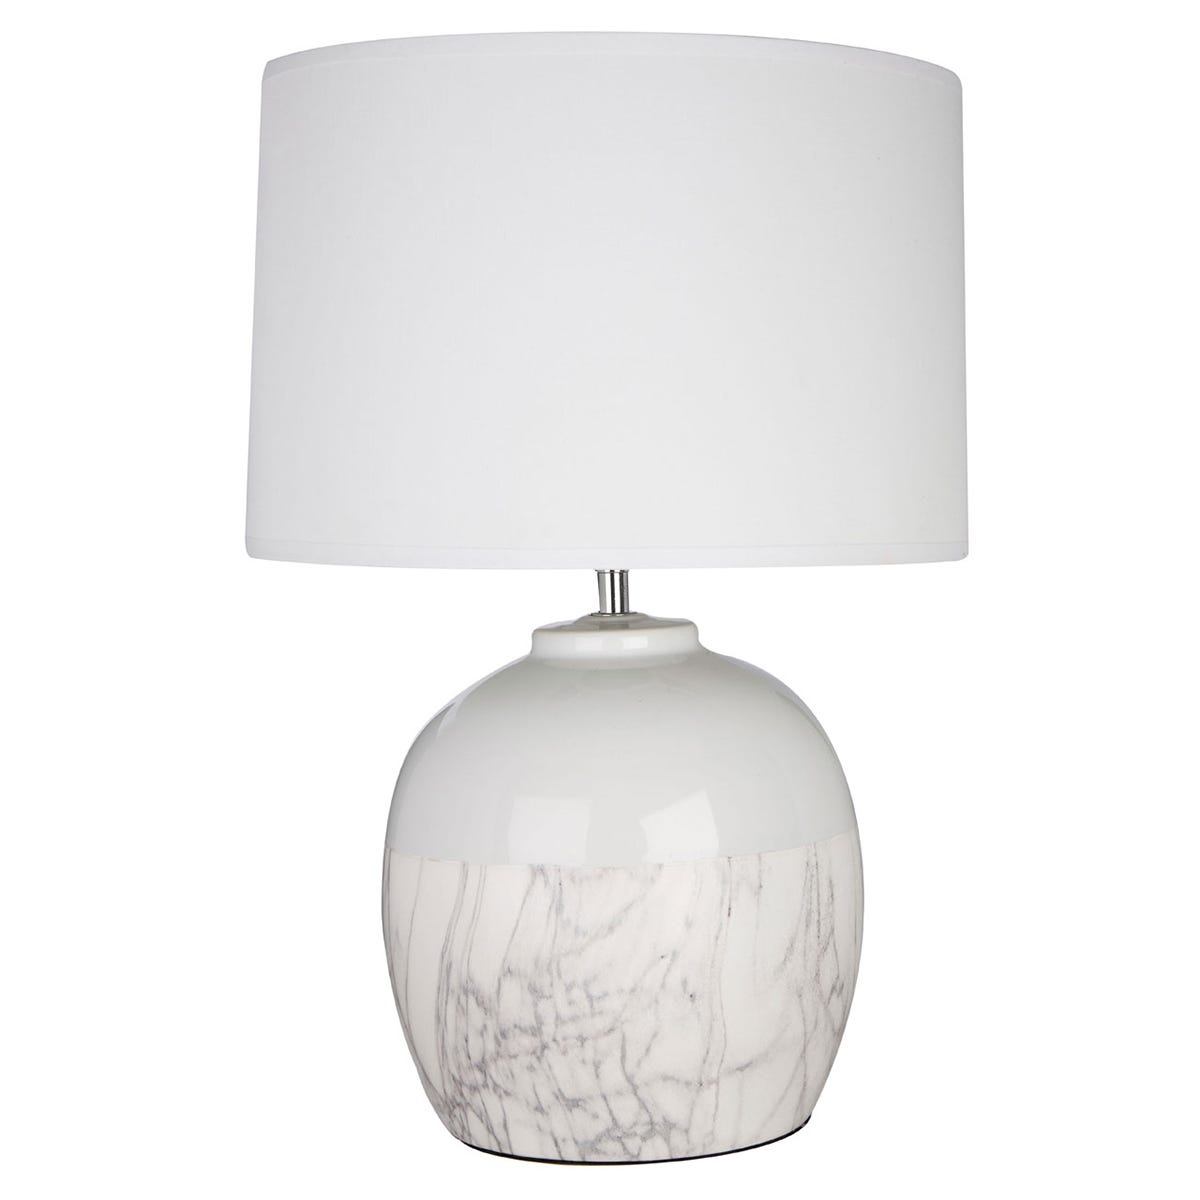 Premier Housewares Whitley Table Lamp in White Ceramic with White Fabric Shade